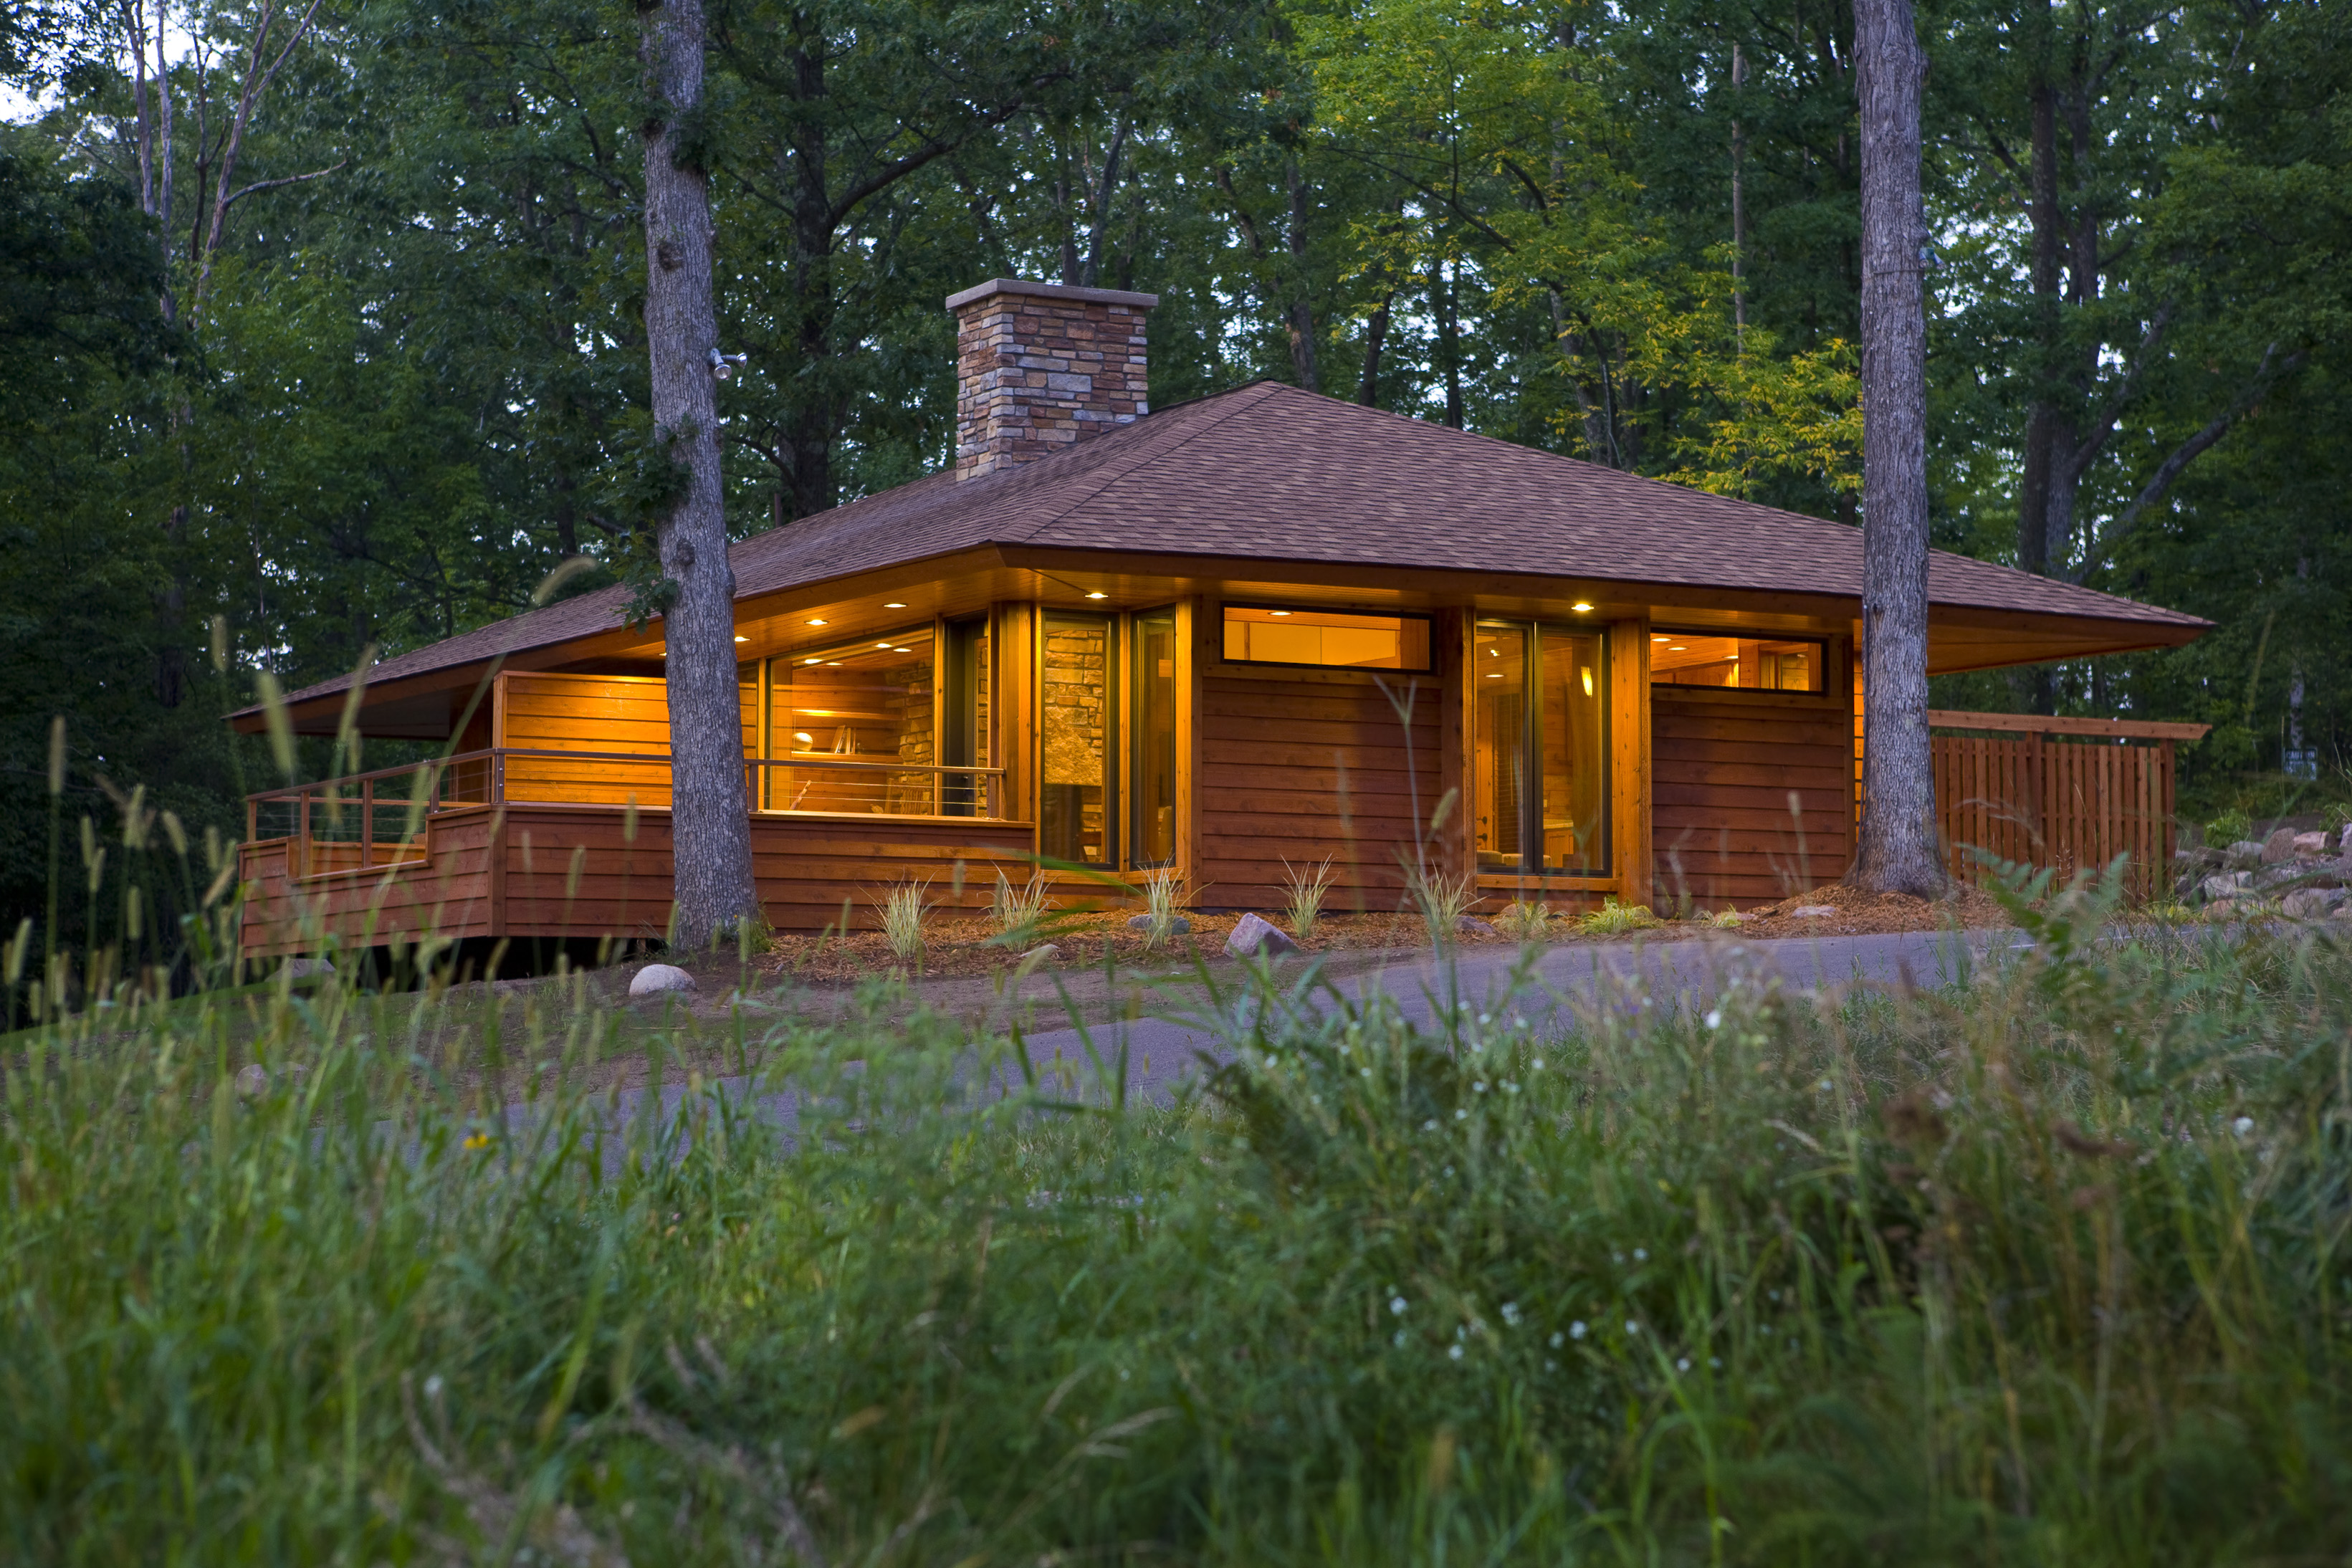 cabin valley kentucky cottage cabins visitor vacation romantic lake official rental rentals peaceful cumberland